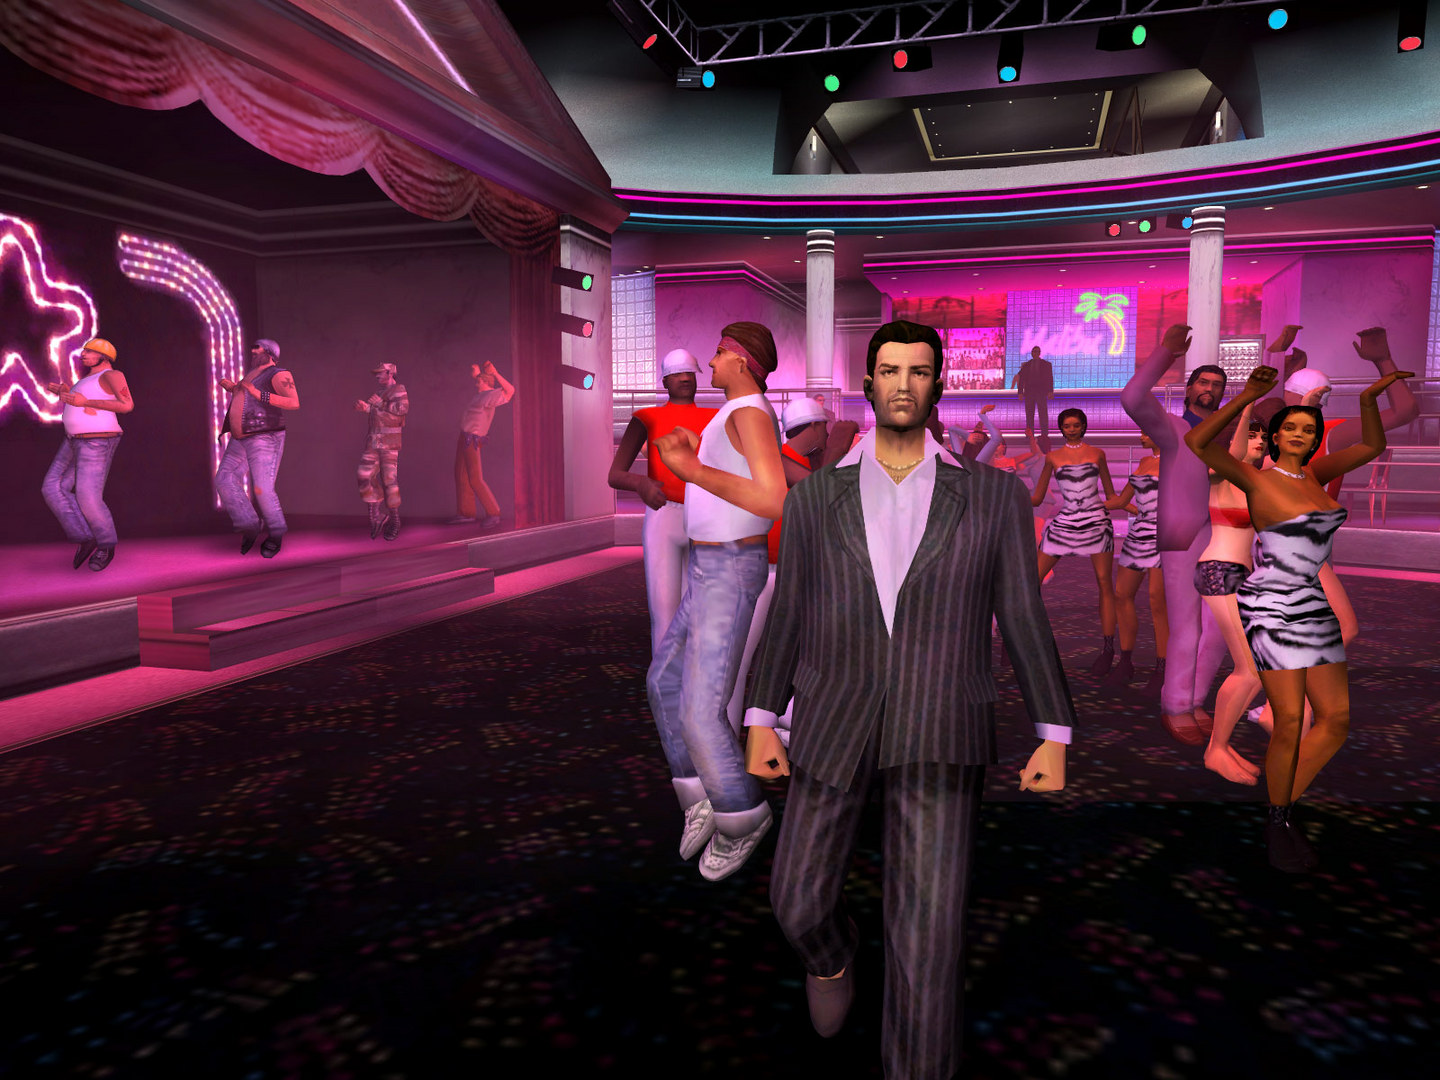 Grand Theft Auto: Vice City - 1.4 GB